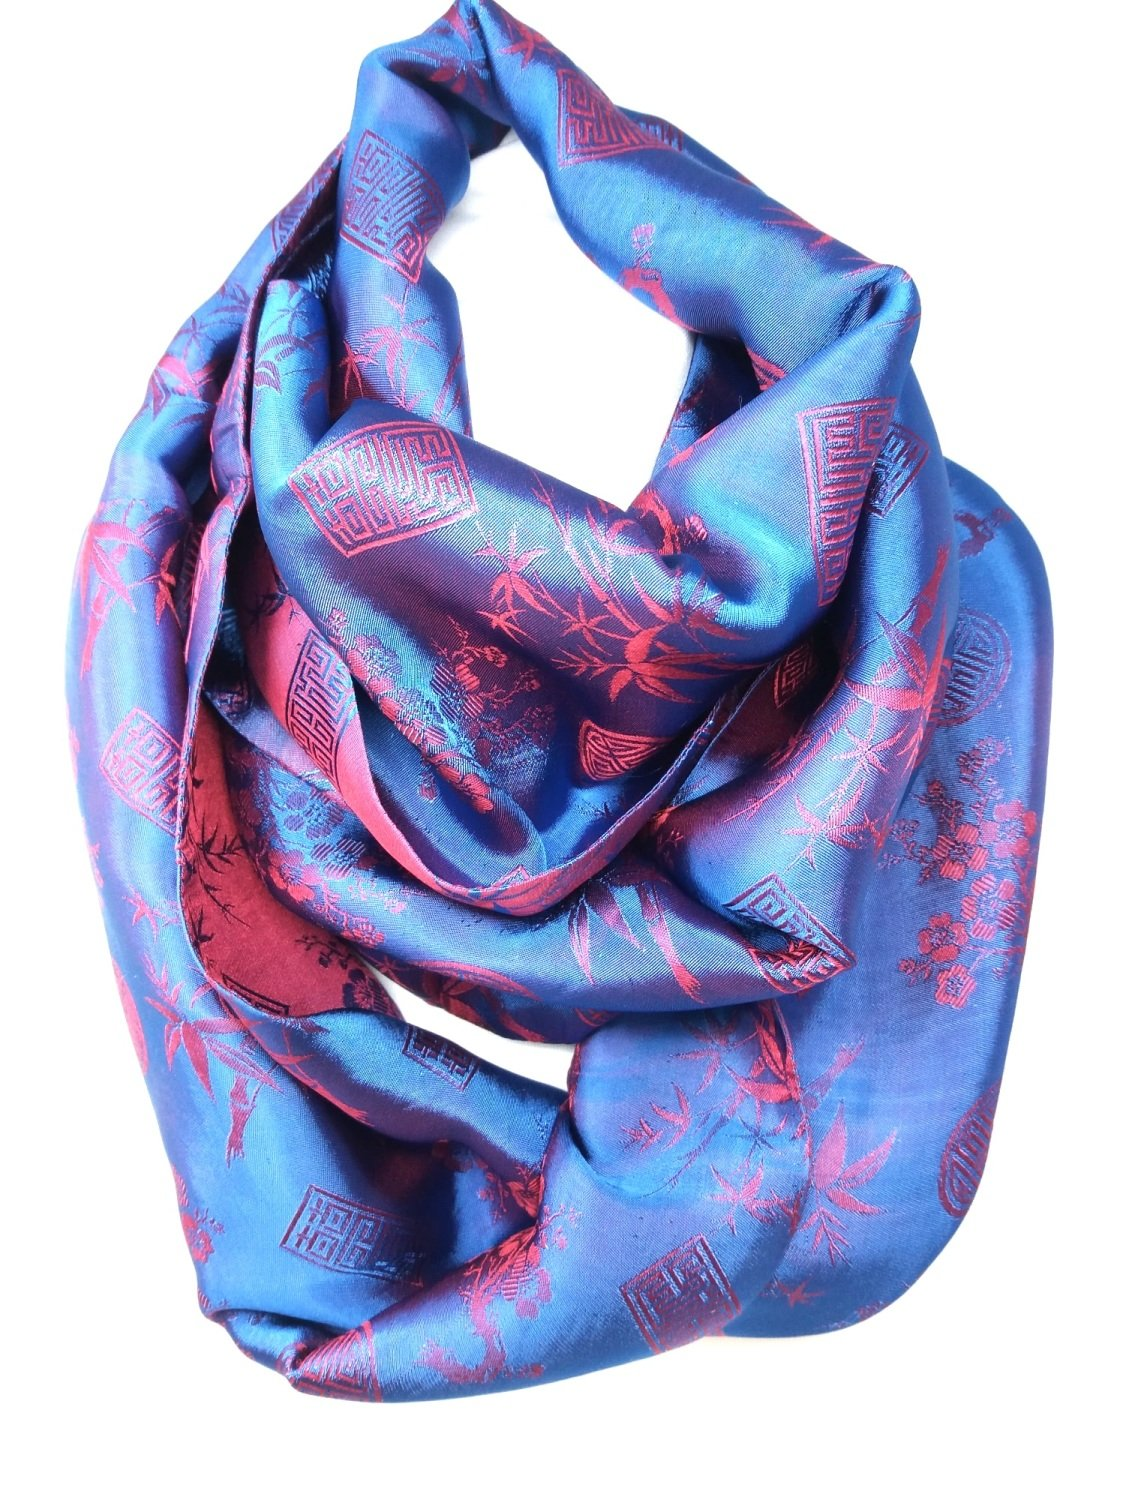 Infinity Jacquard Red & Blue Scarf